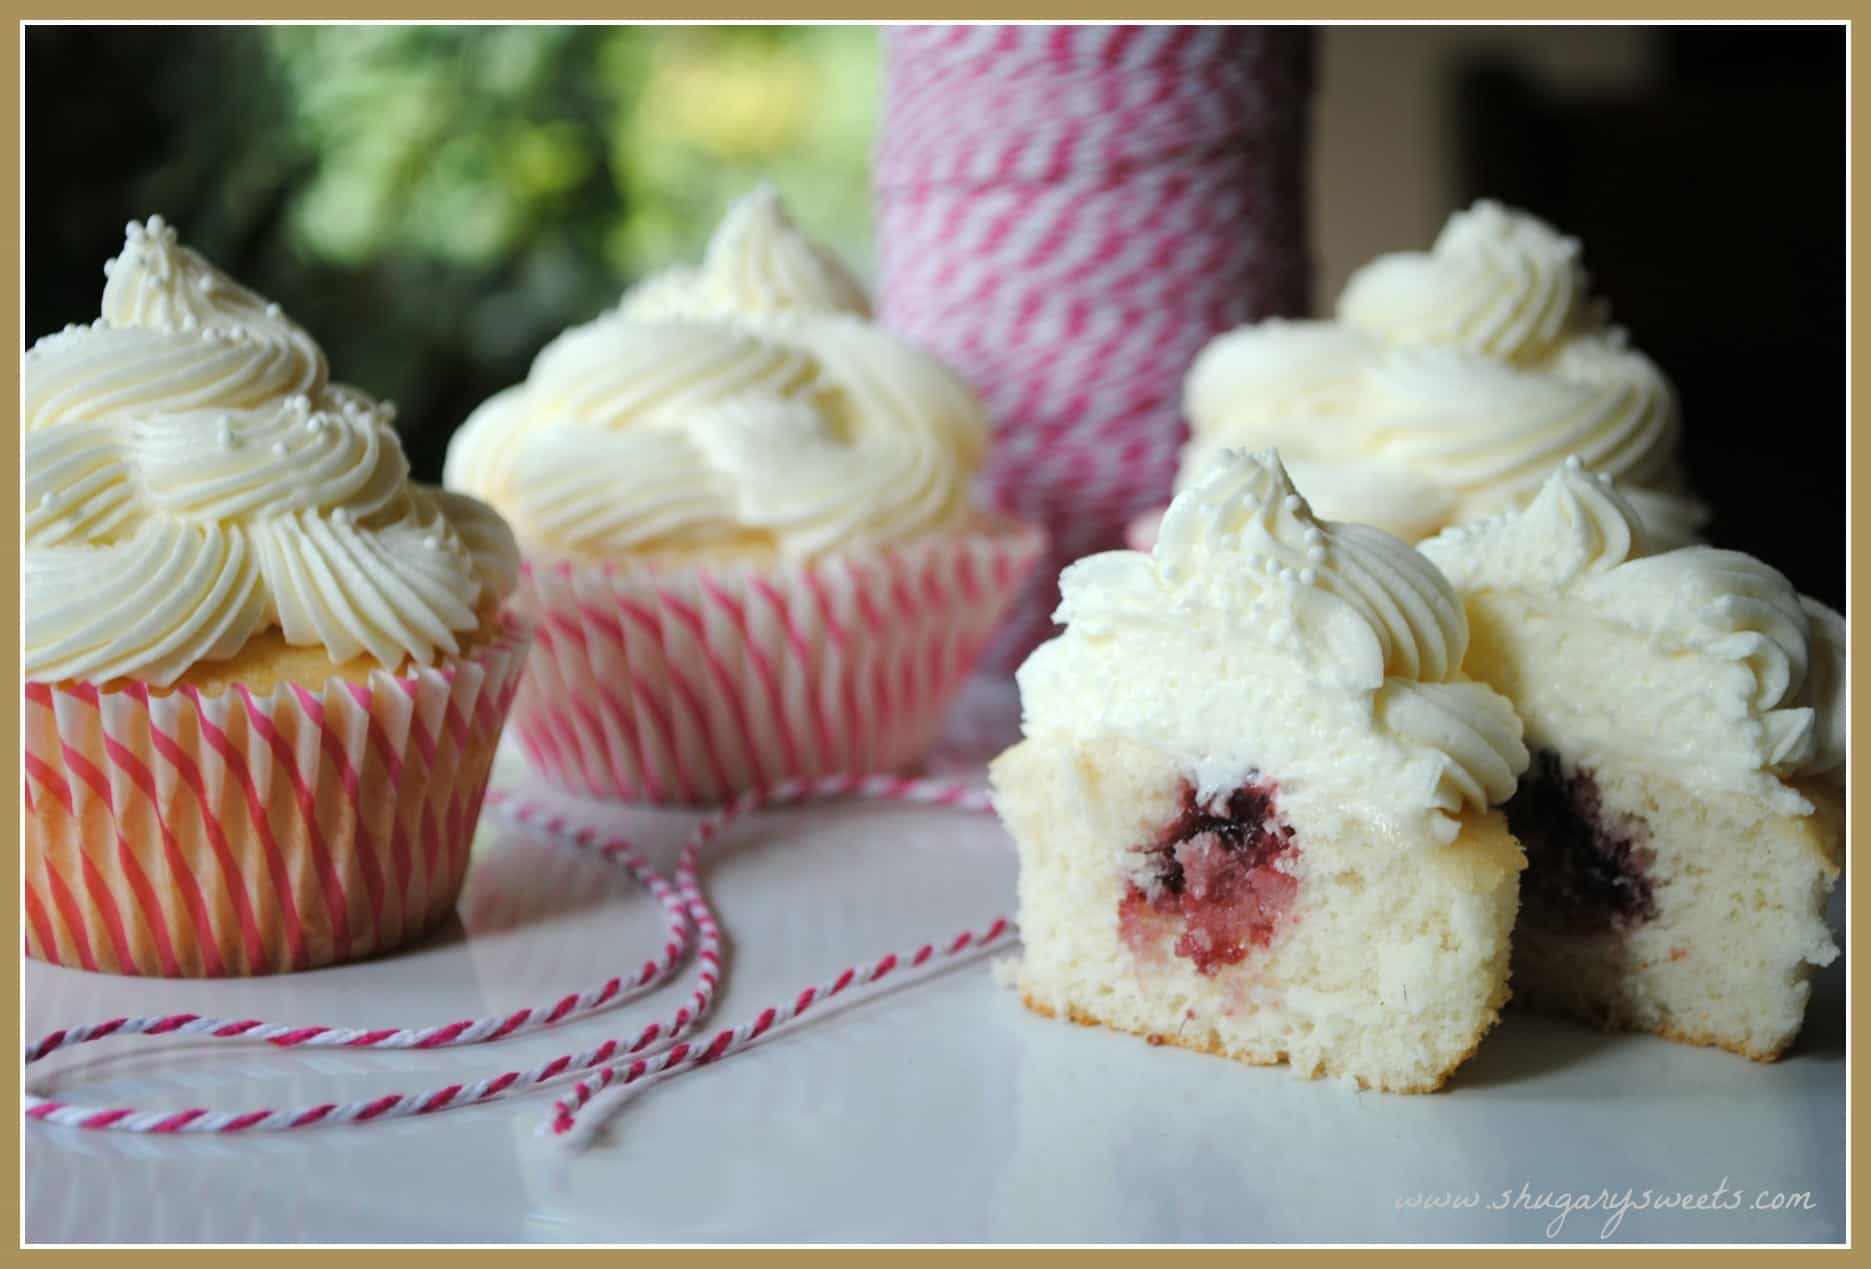 Raspberry Wedding Cake Filling Almond Wedding Cake Cupcakes With